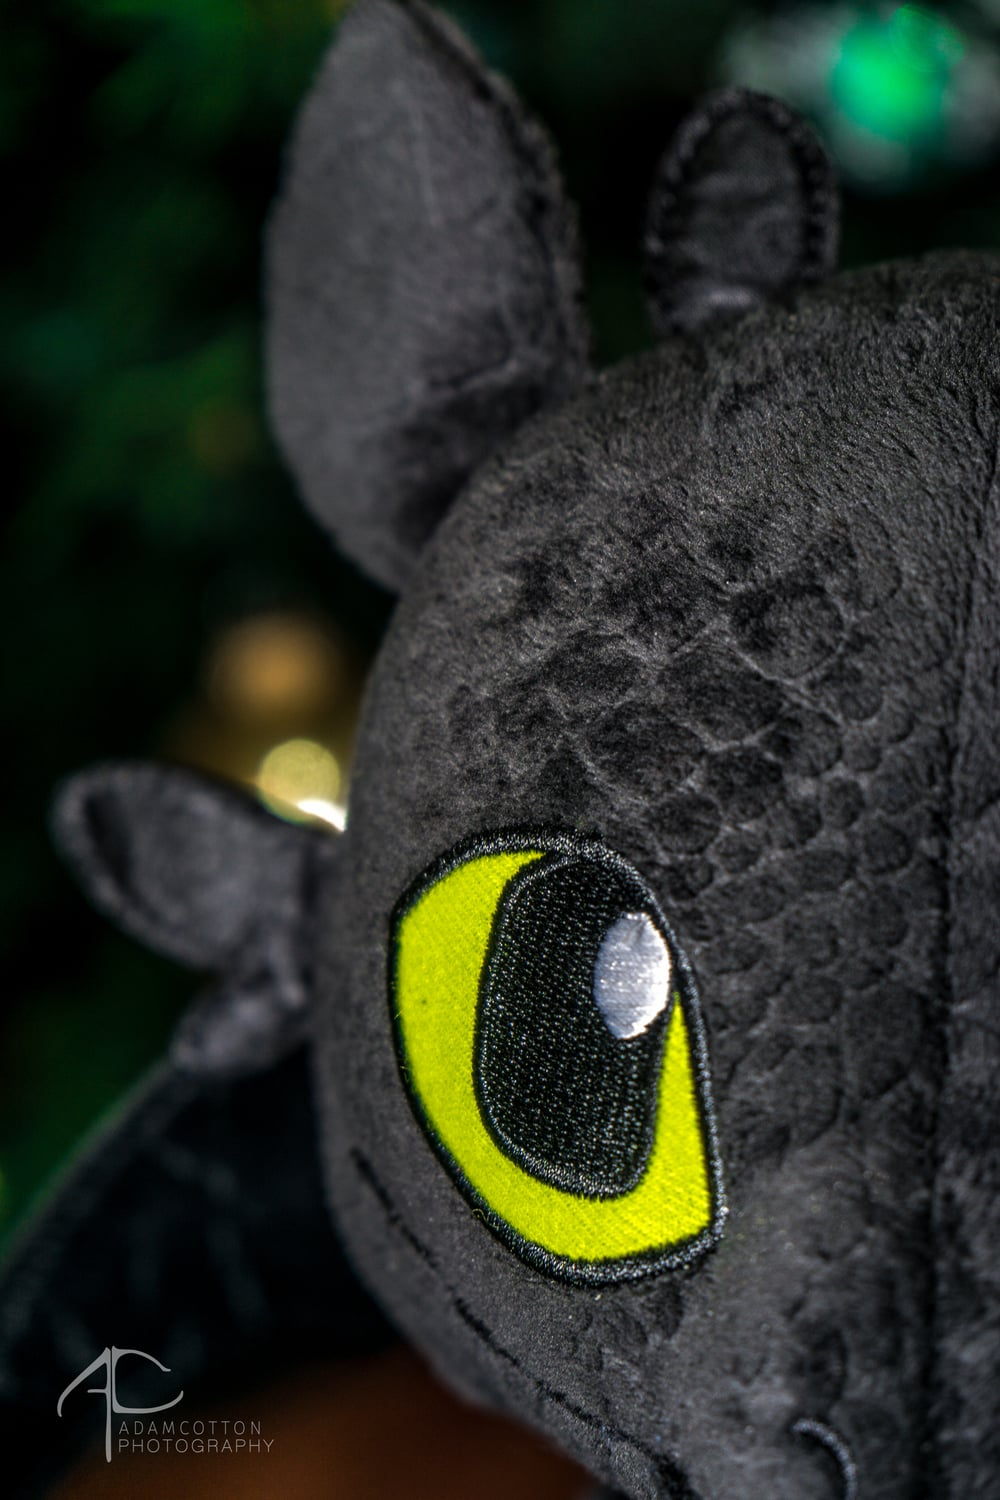 Toothless_doll_closeup_rotolight.jpg